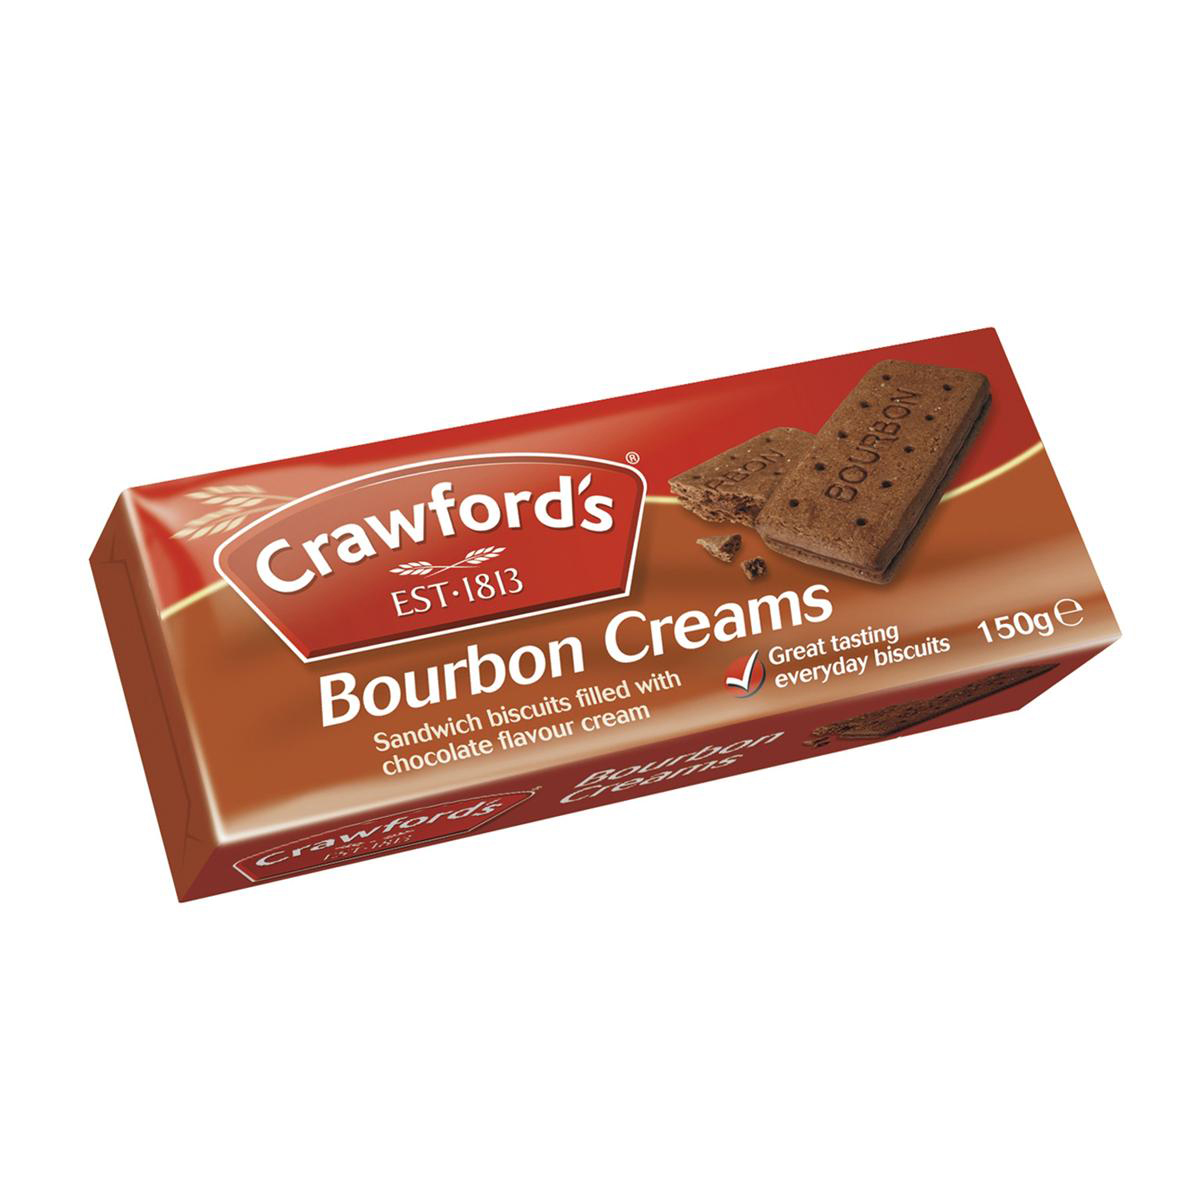 Biscuits Crawfords Bourbon Biscuits 150g Ref UTB021 Pack 12